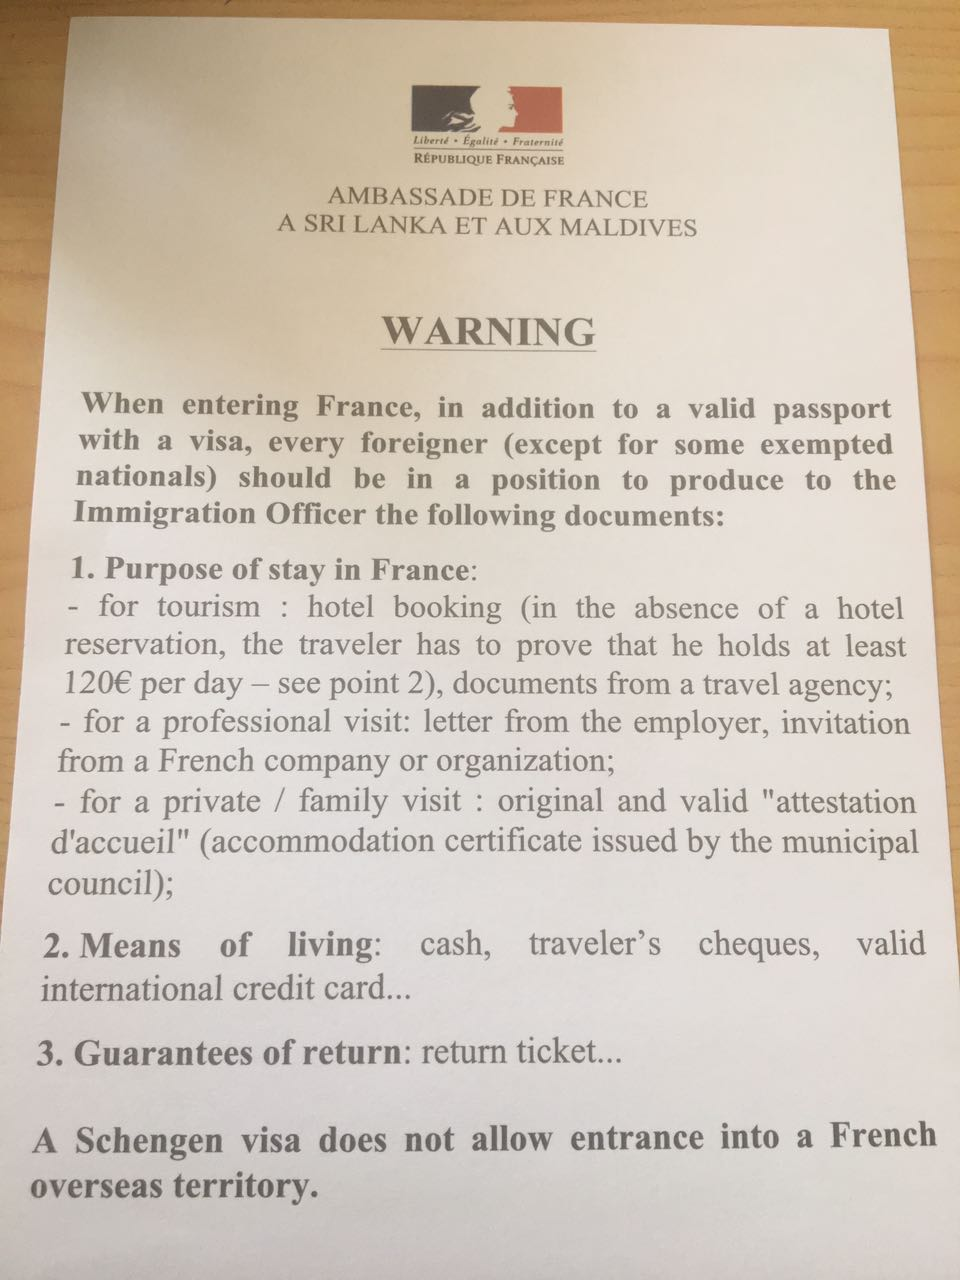 Additional Requirements At French Borders